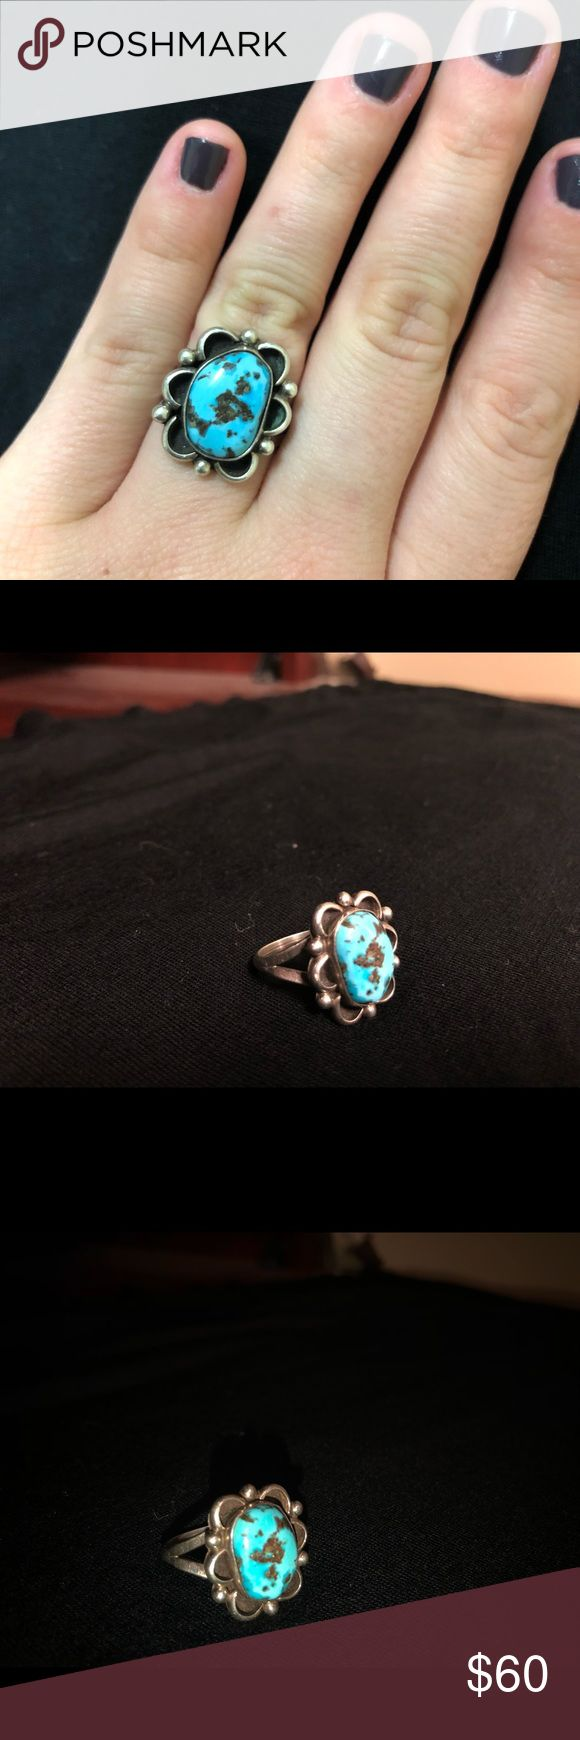 Turquoise Ring Old pawn Jewelry Rings